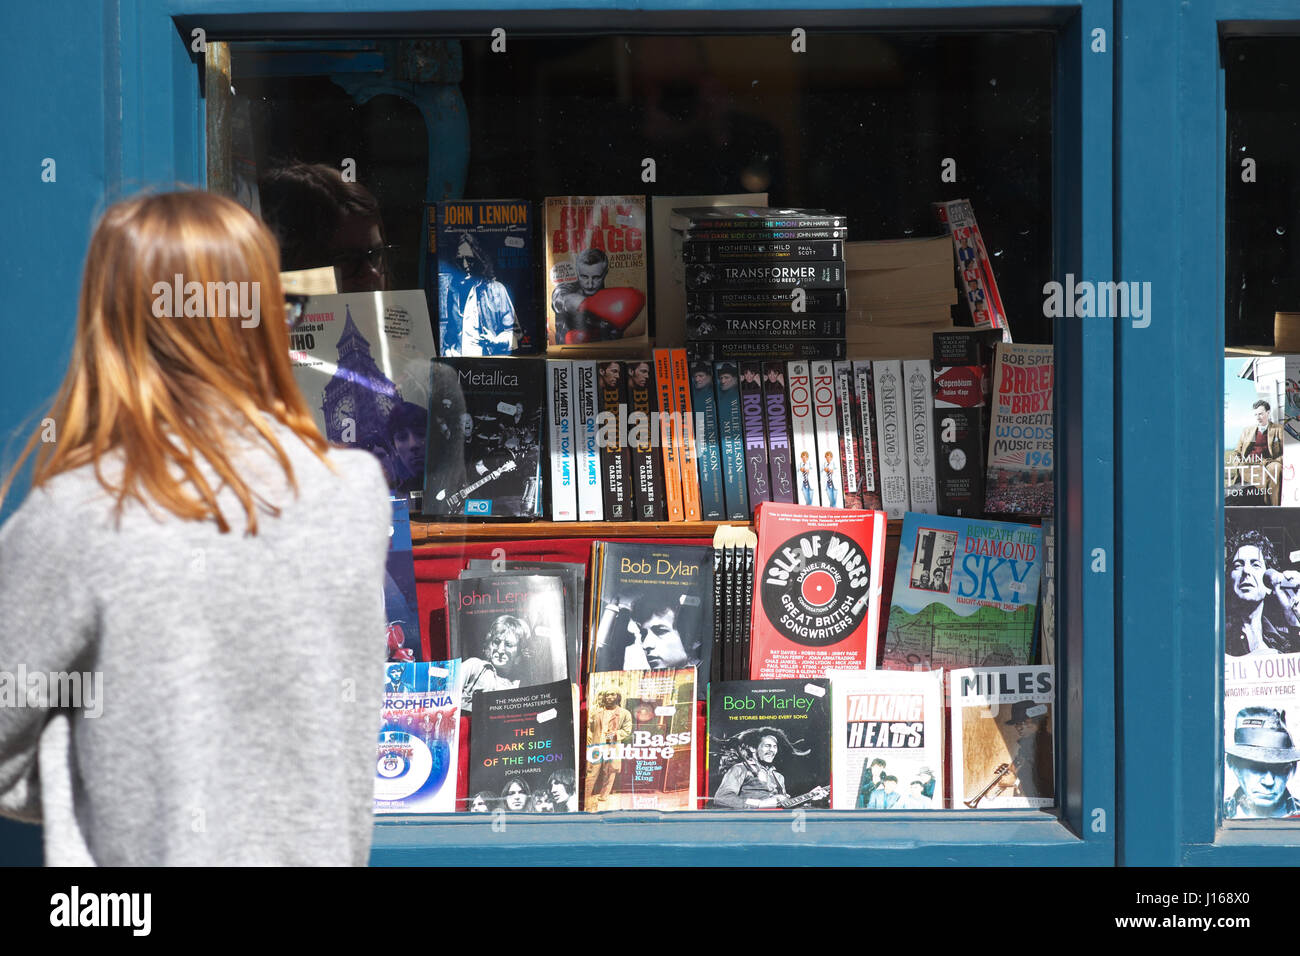 Hay on Wye, Powys, Wales - A visitor looks in a seconhand bookshop window Hay-on-Wye UK - Stock Image